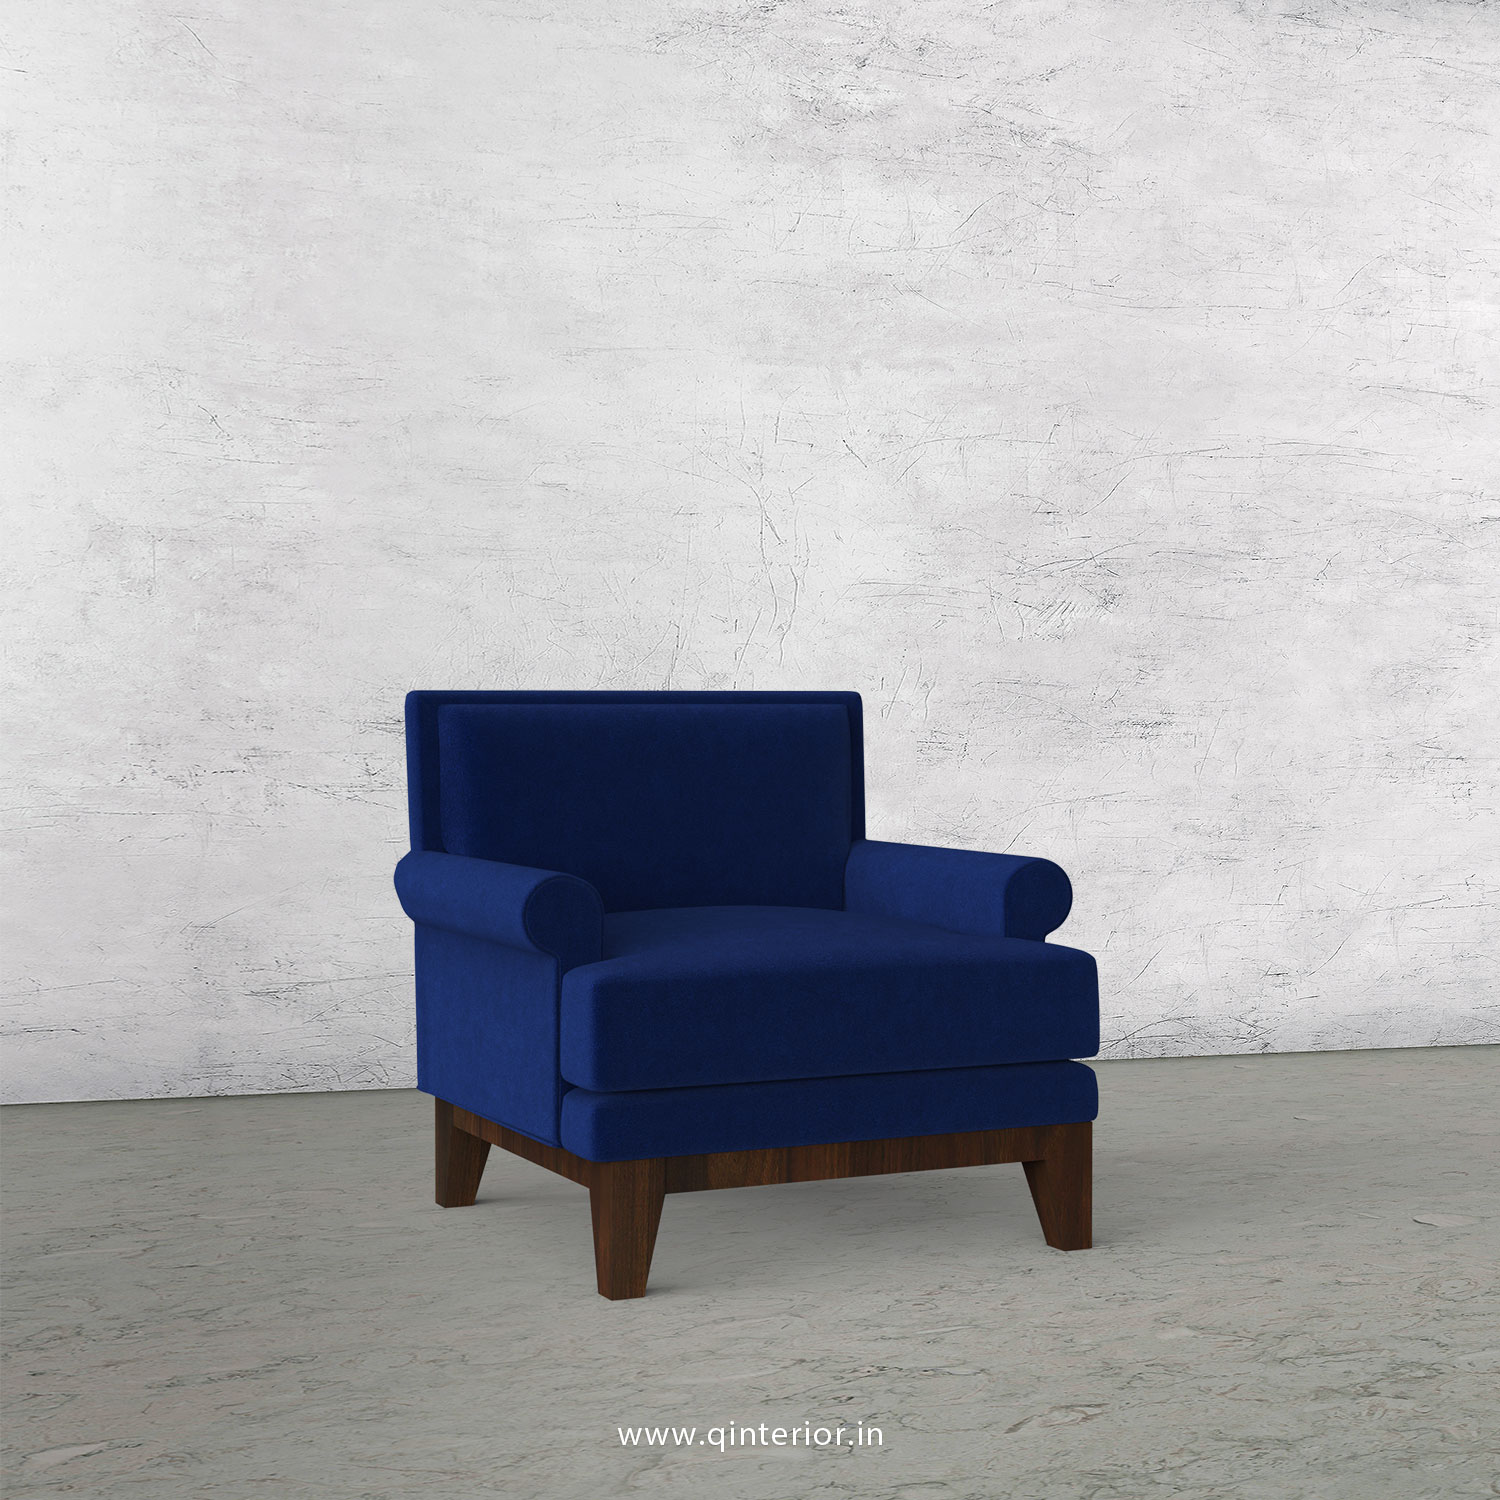 Aviana 1 Seater Sofa in Velvet Fabric - SFA001 VL05